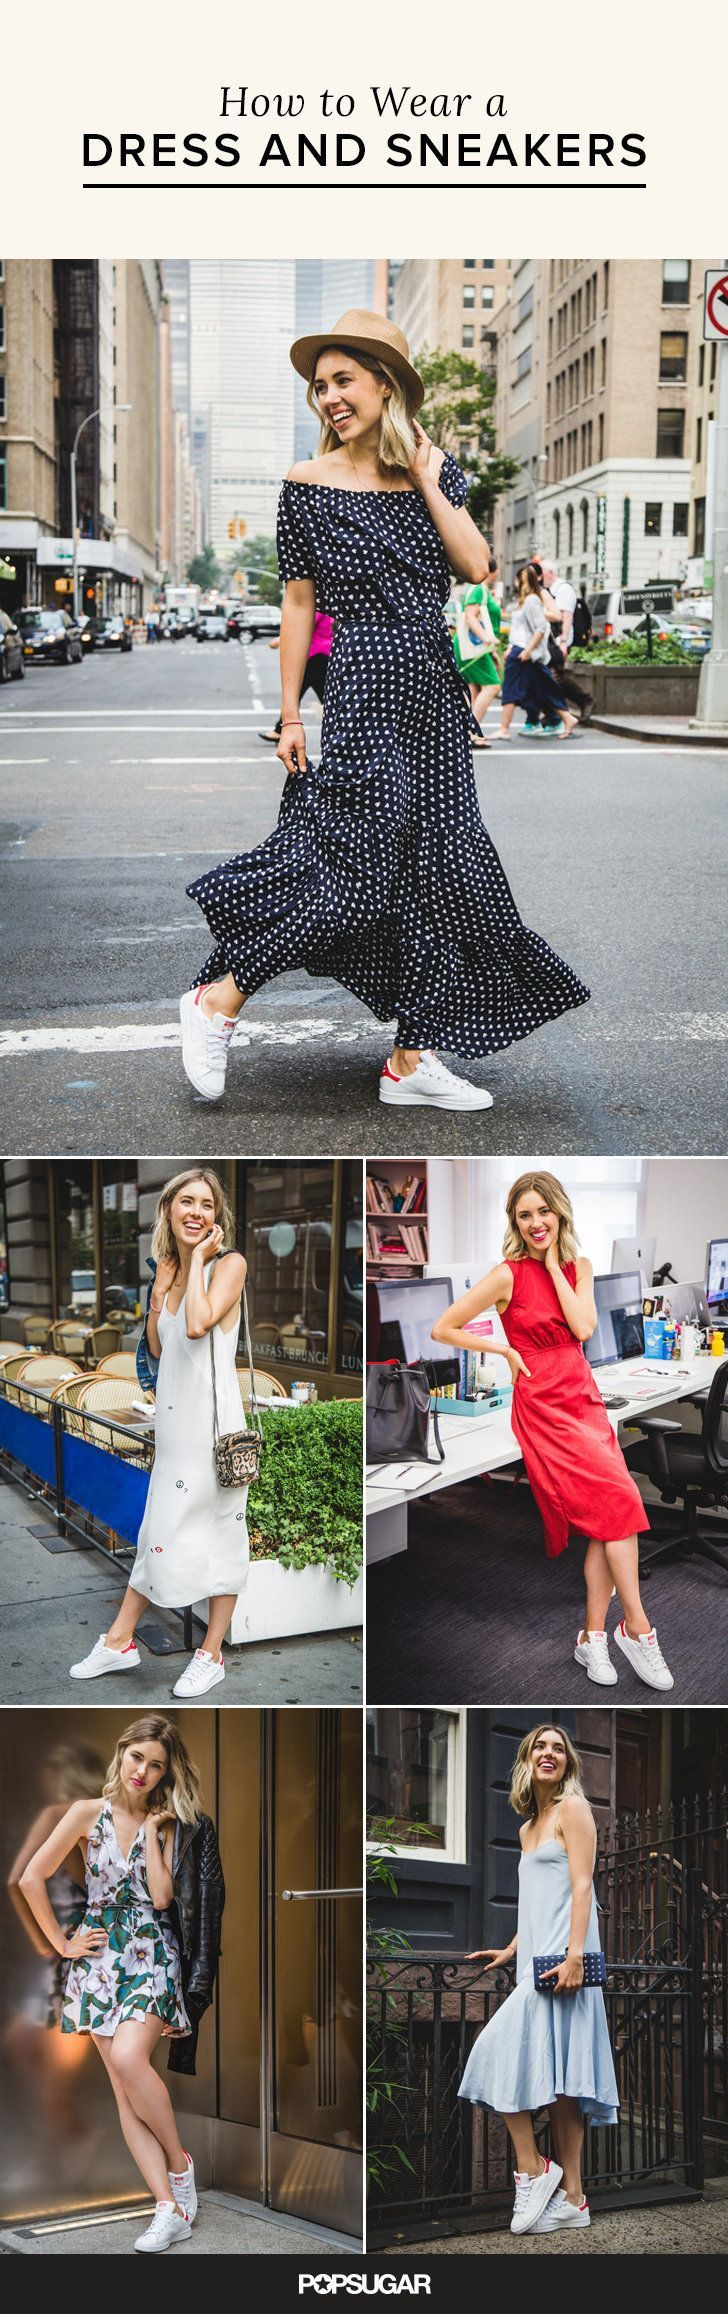 5 Foolproof Ways to Pair a Dress With Sneakers